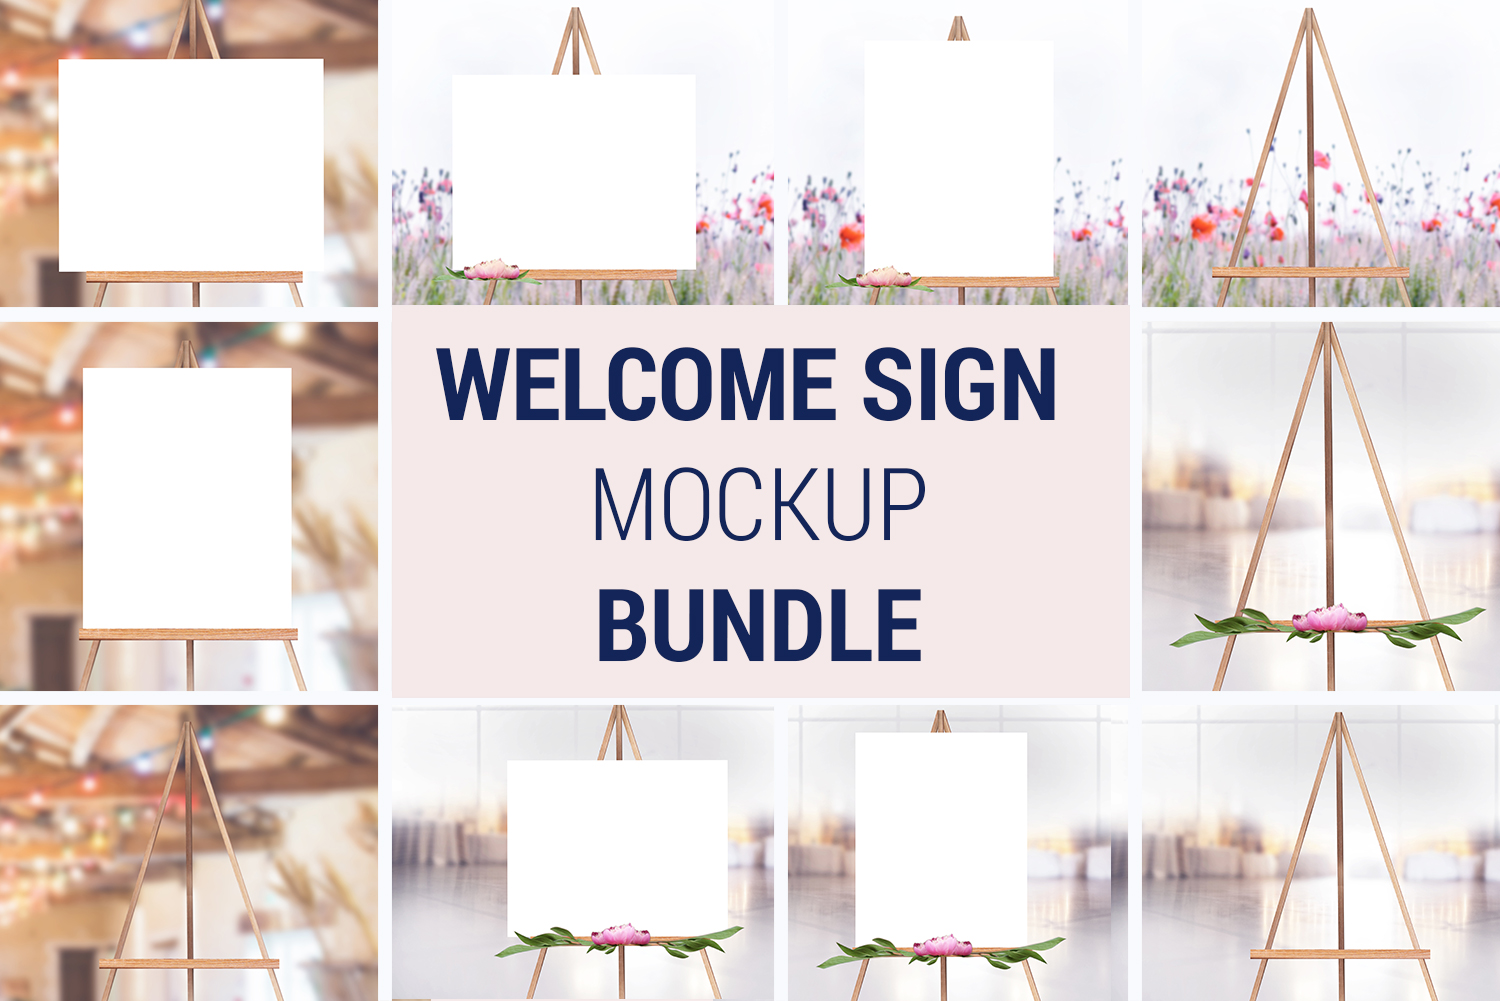 Easel Mockup BUNDLE, Welcome sign, Wedding Sign Mockup, 996 example image 1